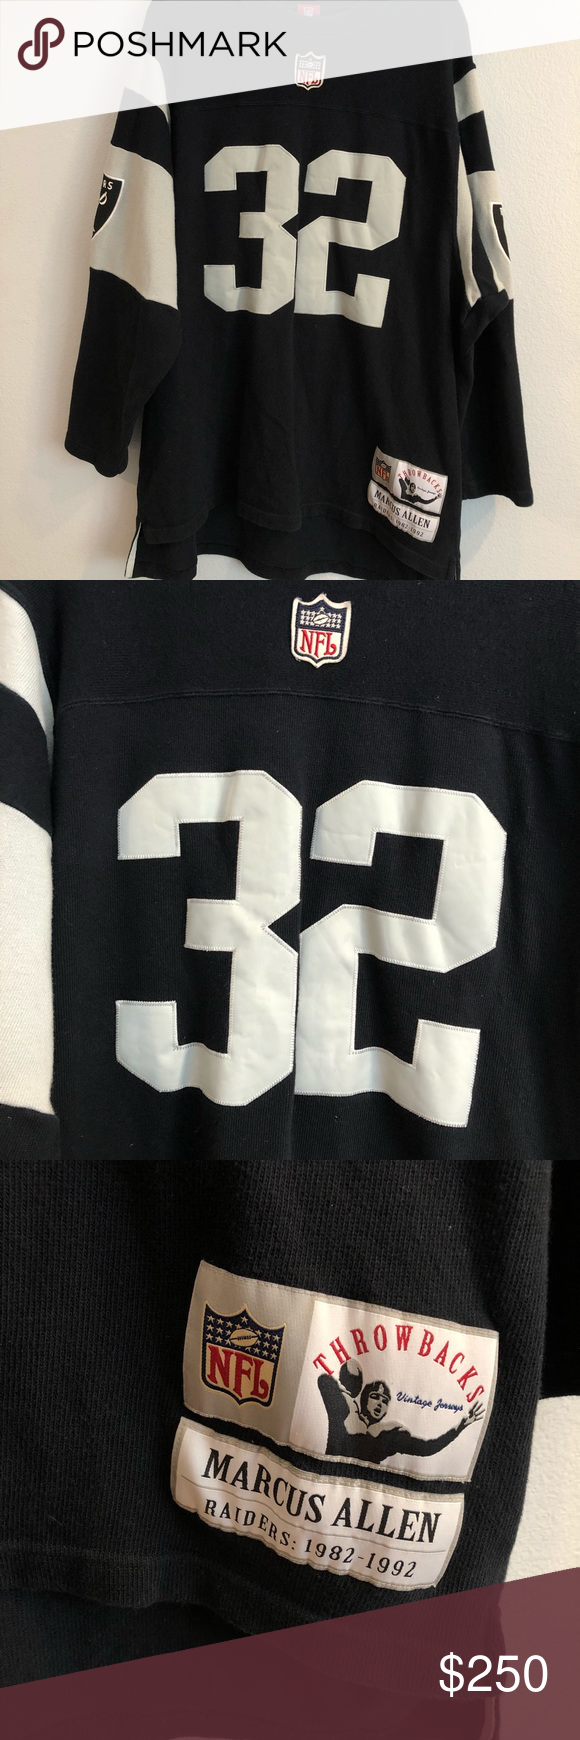 huge selection of 4e0f2 2658c NFL THROWBACK REEBOK RAIDERS MARCUS ALLEN JERSEY NFL ...